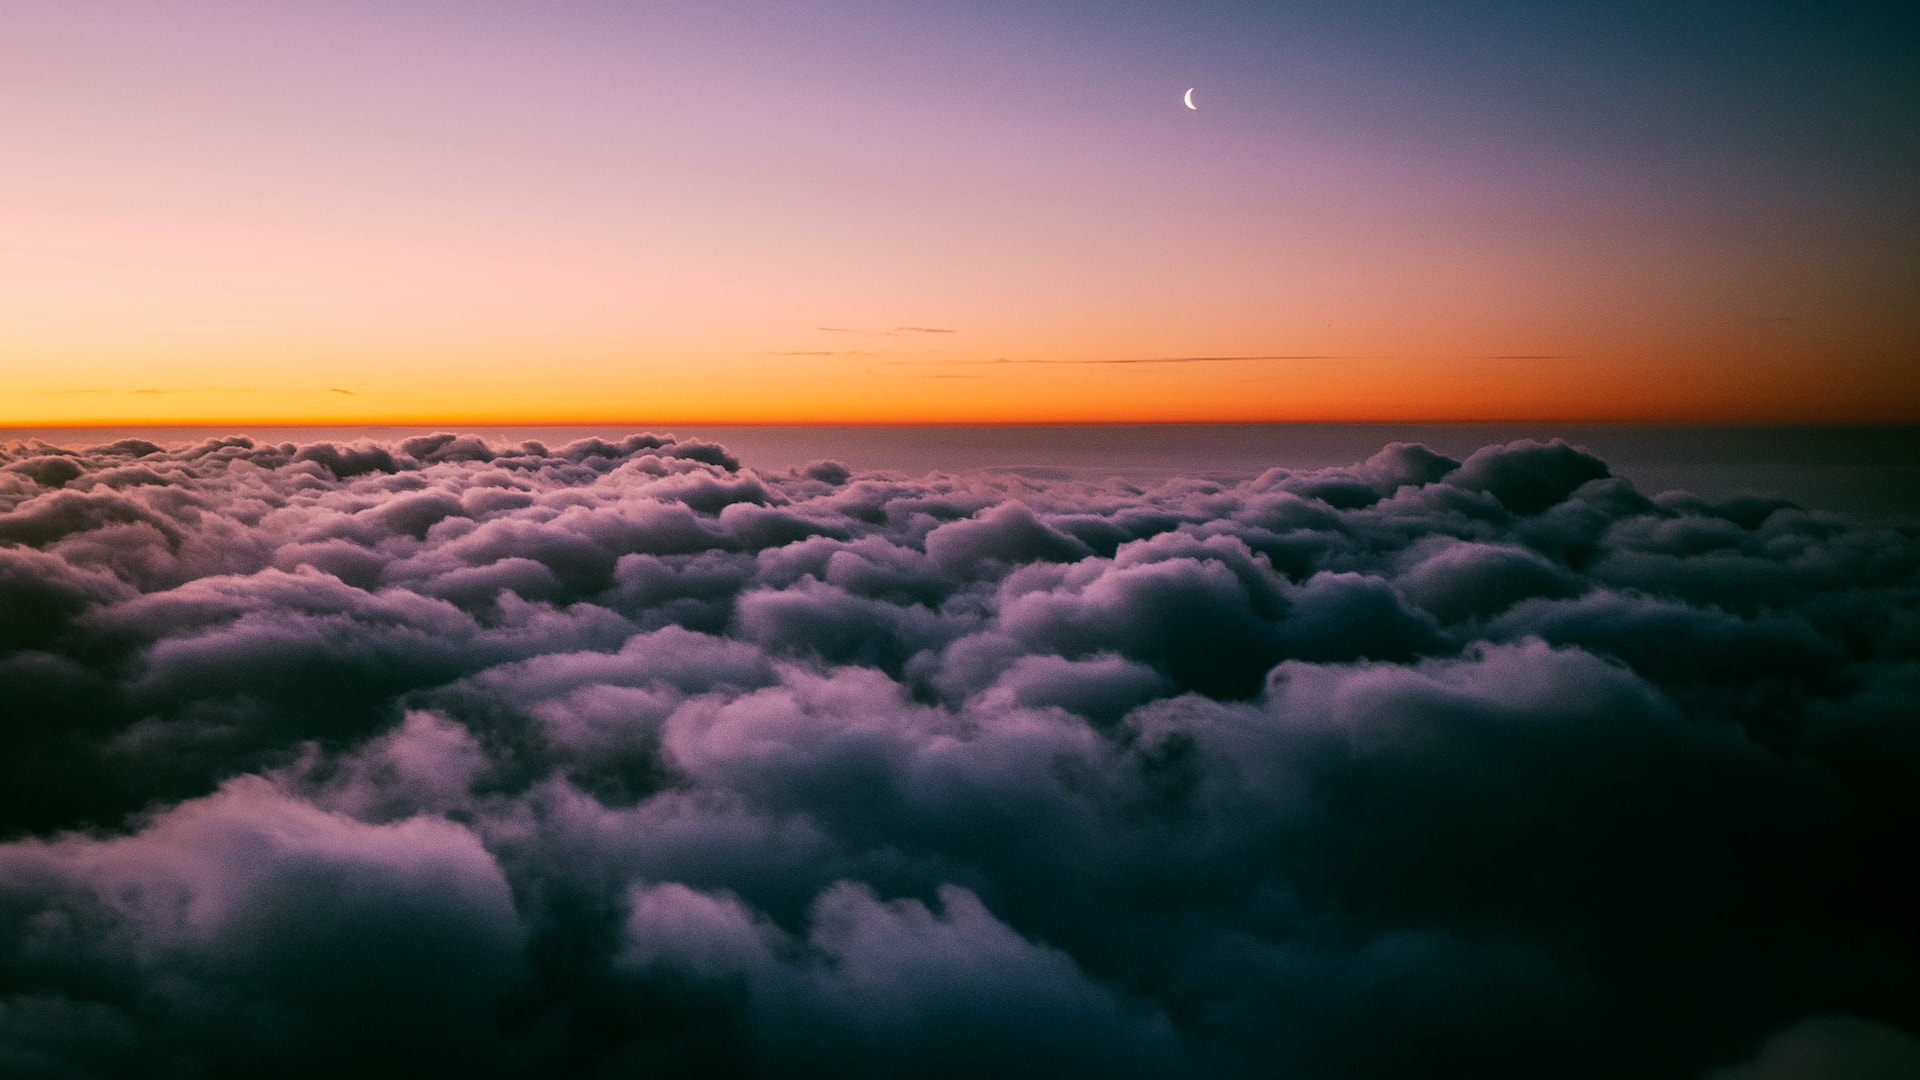 image-of-clouds-over-pink-sky